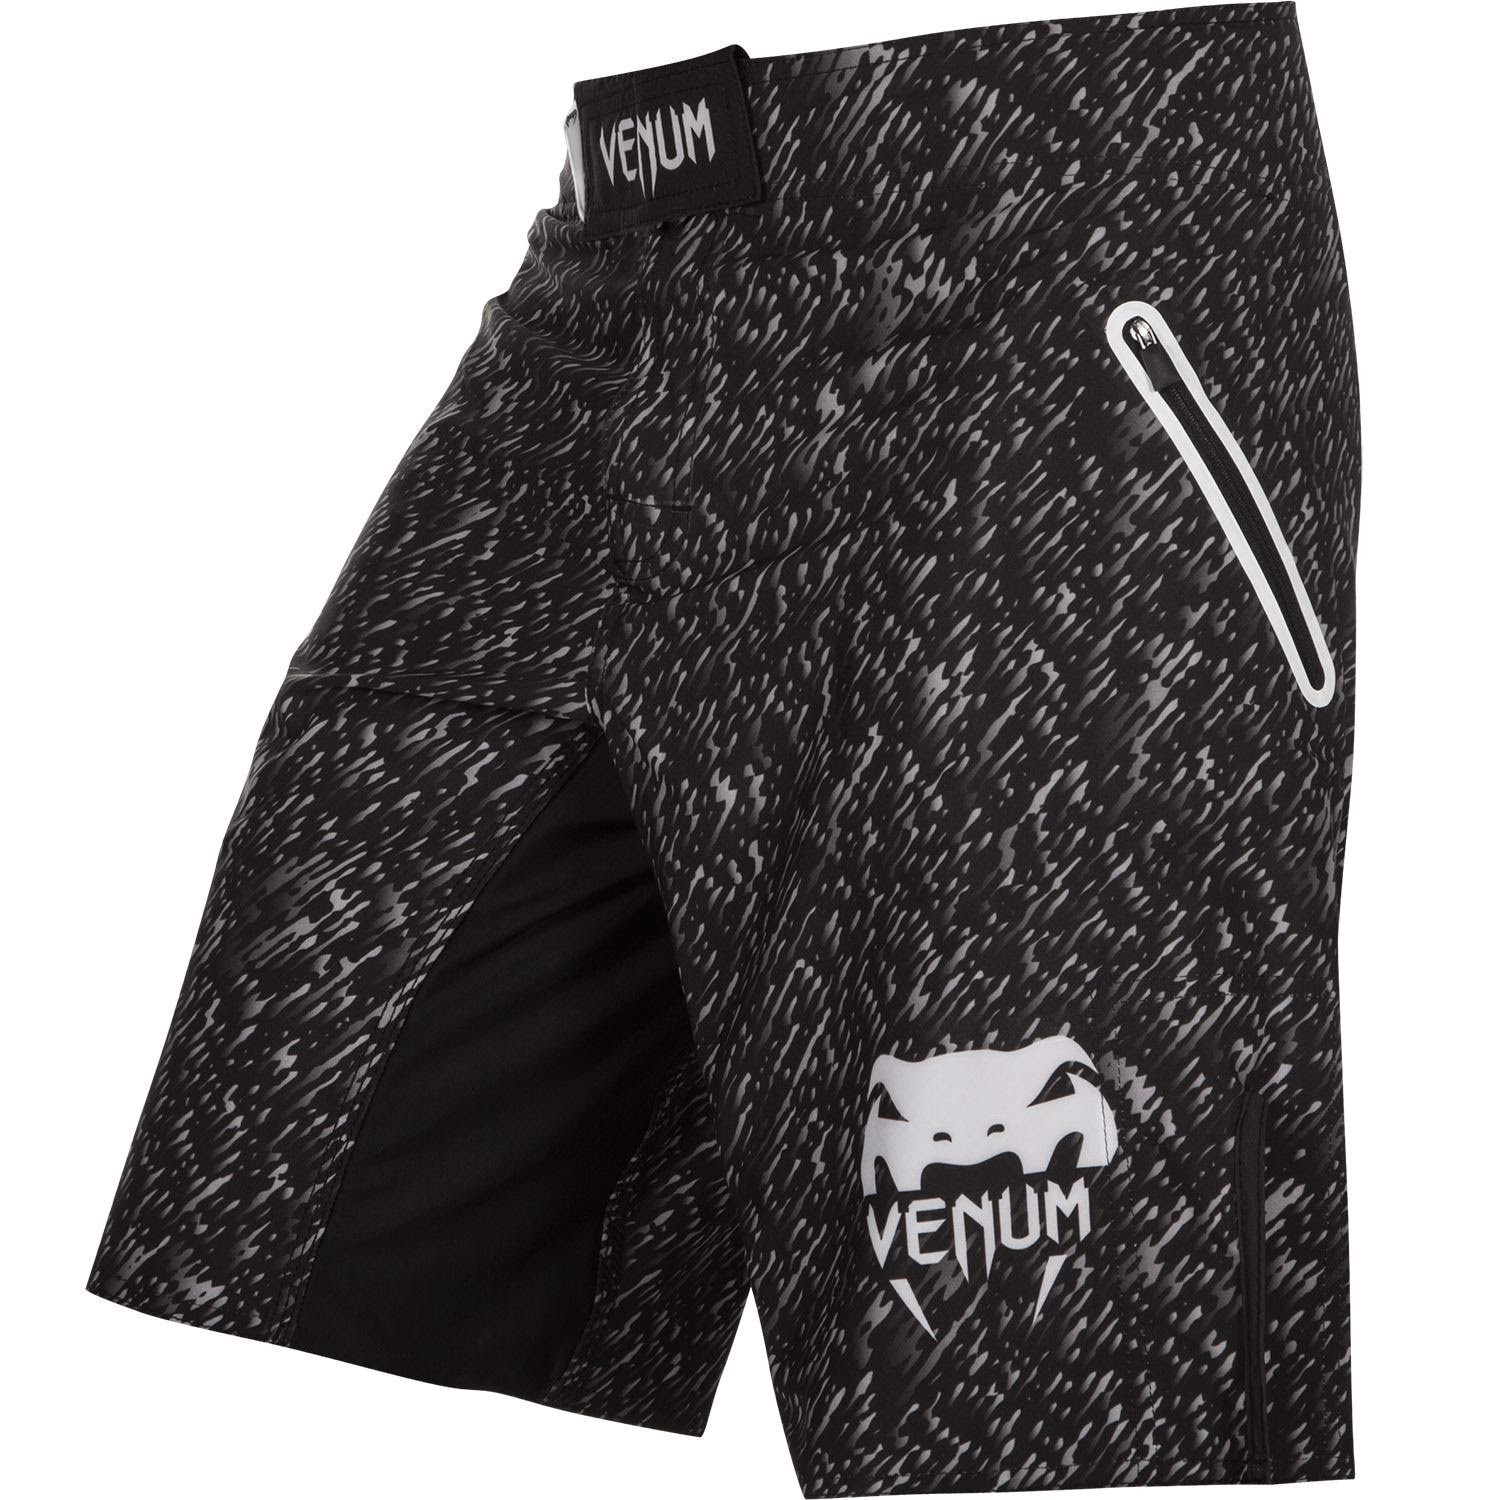 QUẦN VENUM NOISE MMA FIGHT SHORTS - BLACK/WHITE